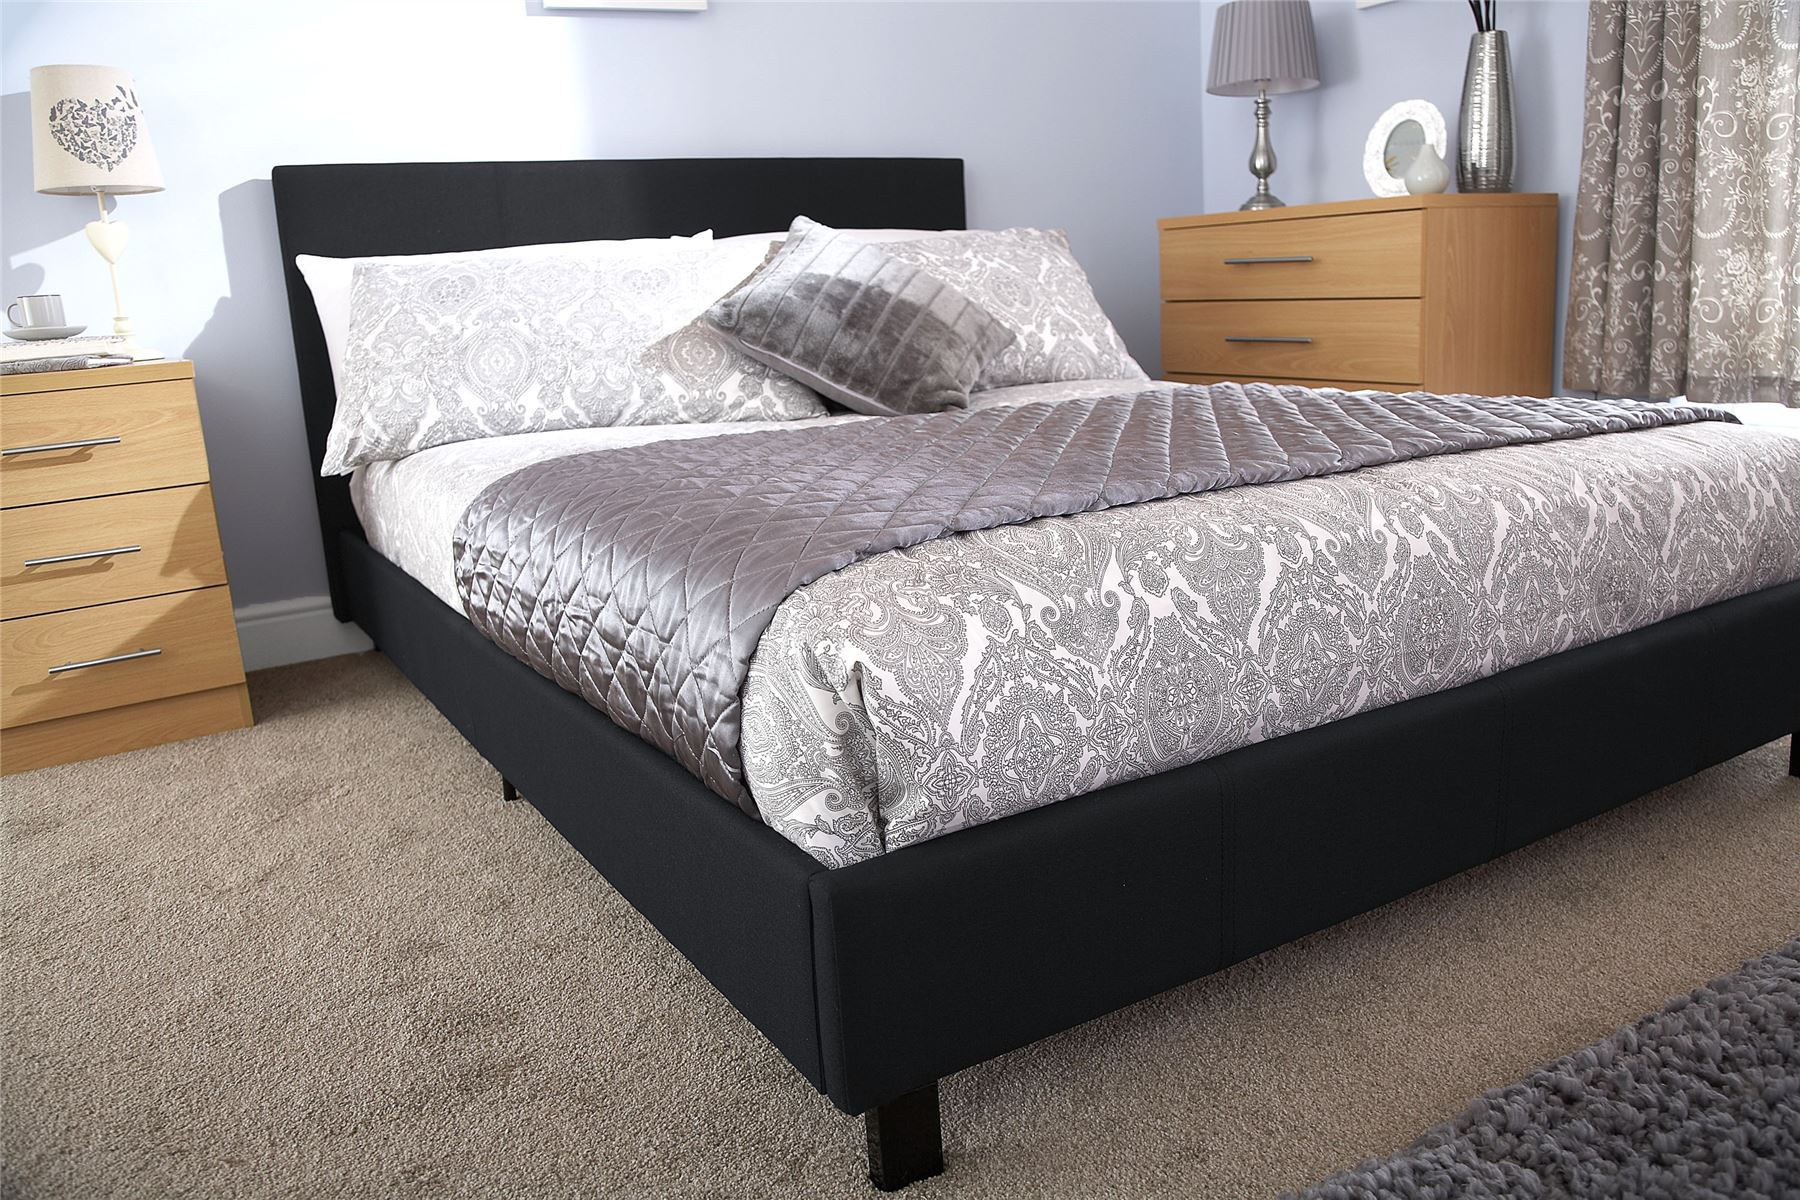 Bed In A Box Fabric Hopsack Bed Modern Style 3ft 4ft 4ft6